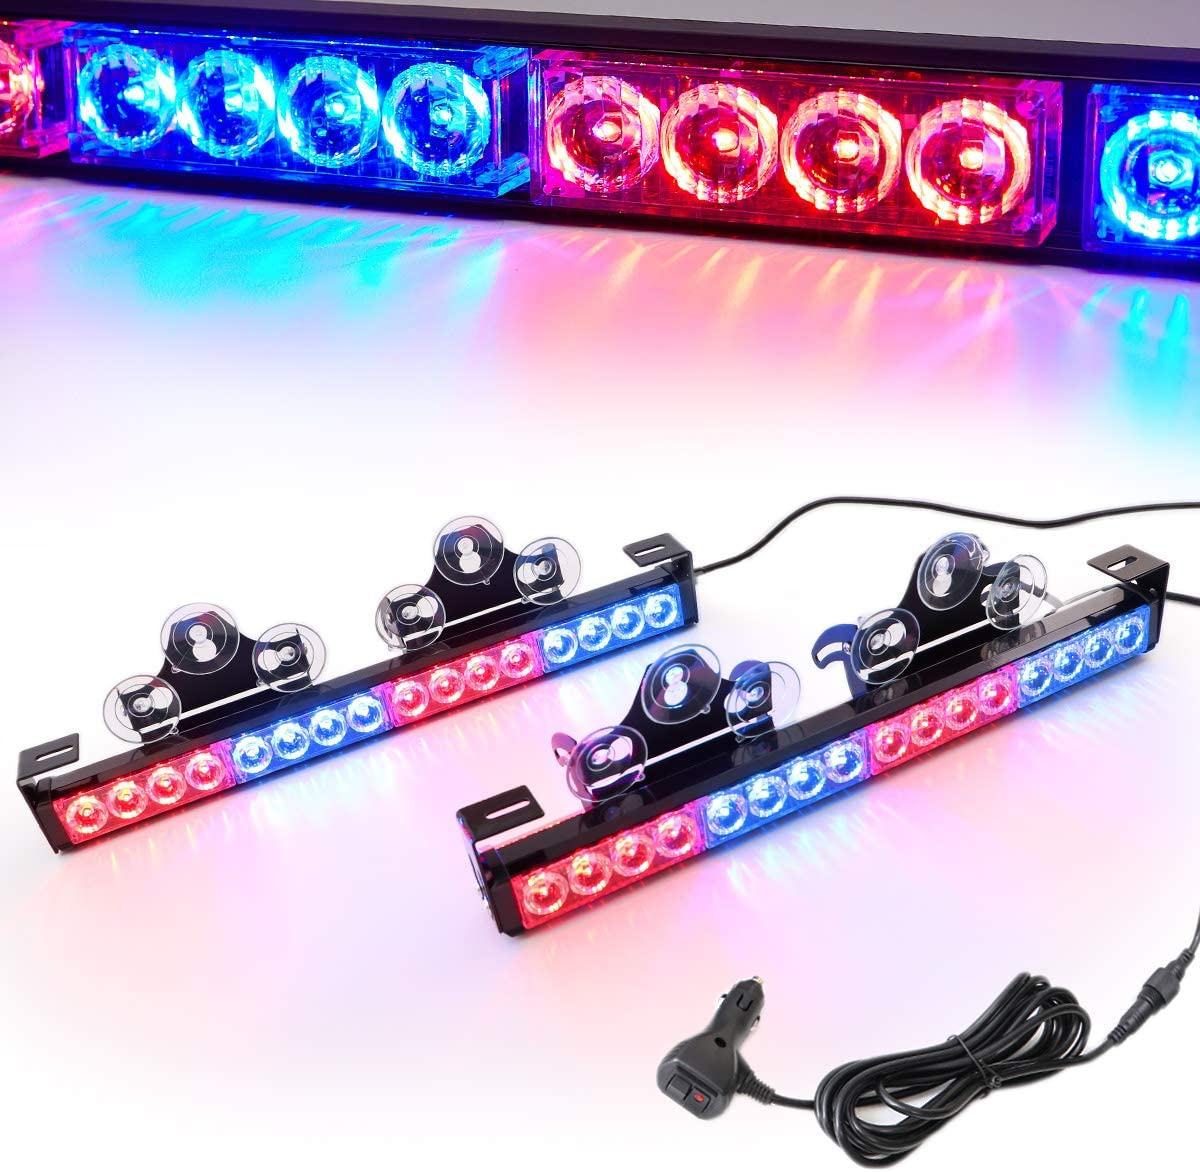 2/×16.8 inch, 32 Led LE-JX Amber 2 in 1 Emergency Strobe Light Bar 21 Flash Patterns Yellow Traffic Advisor Warning Hazard Windshield Safety Lights Bar with Cigar Lighter for Police Vehicles Truck